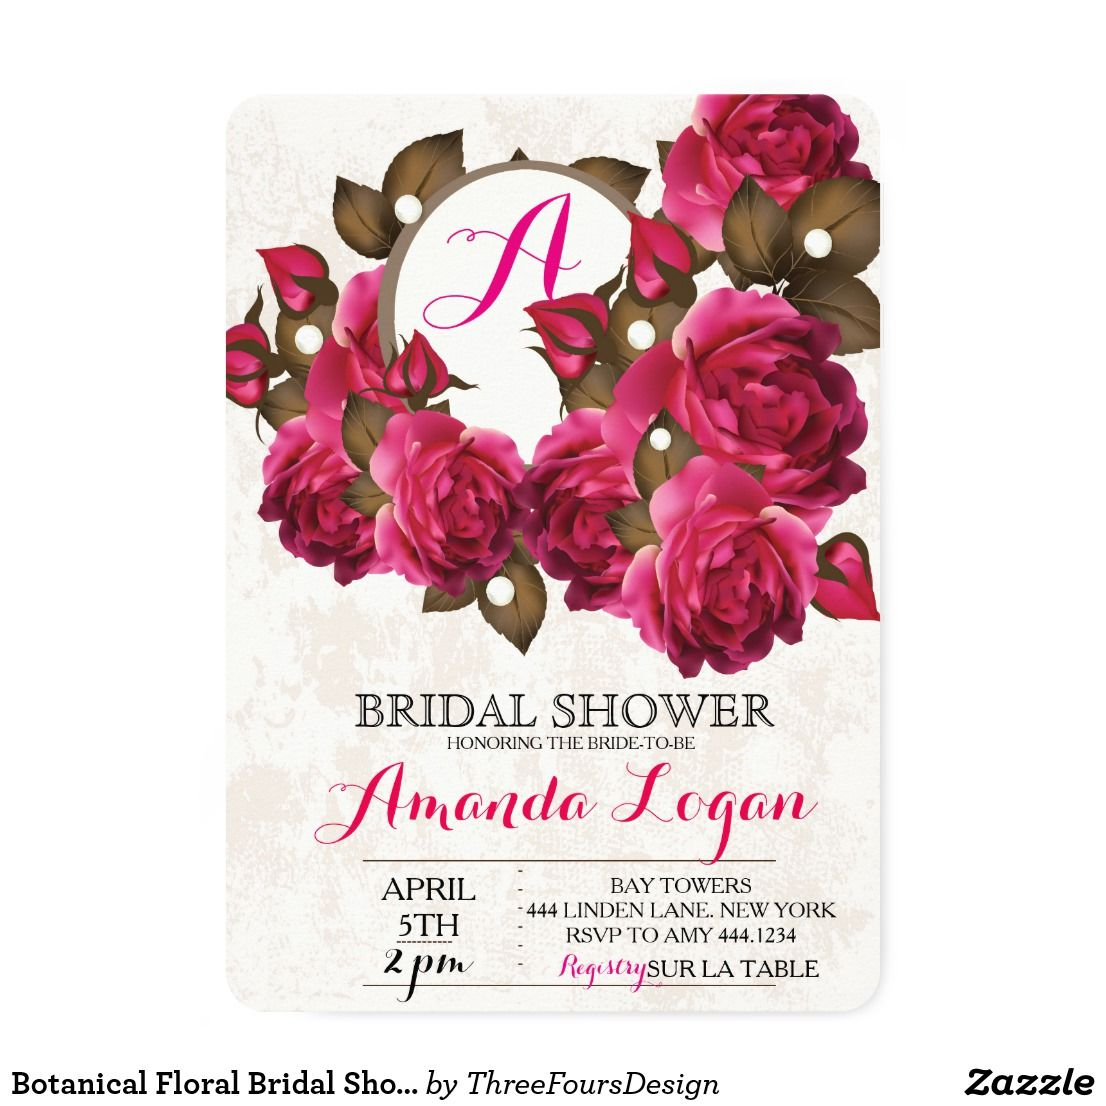 Botanical Floral Bridal Shower Invitations | Shower invitations ...